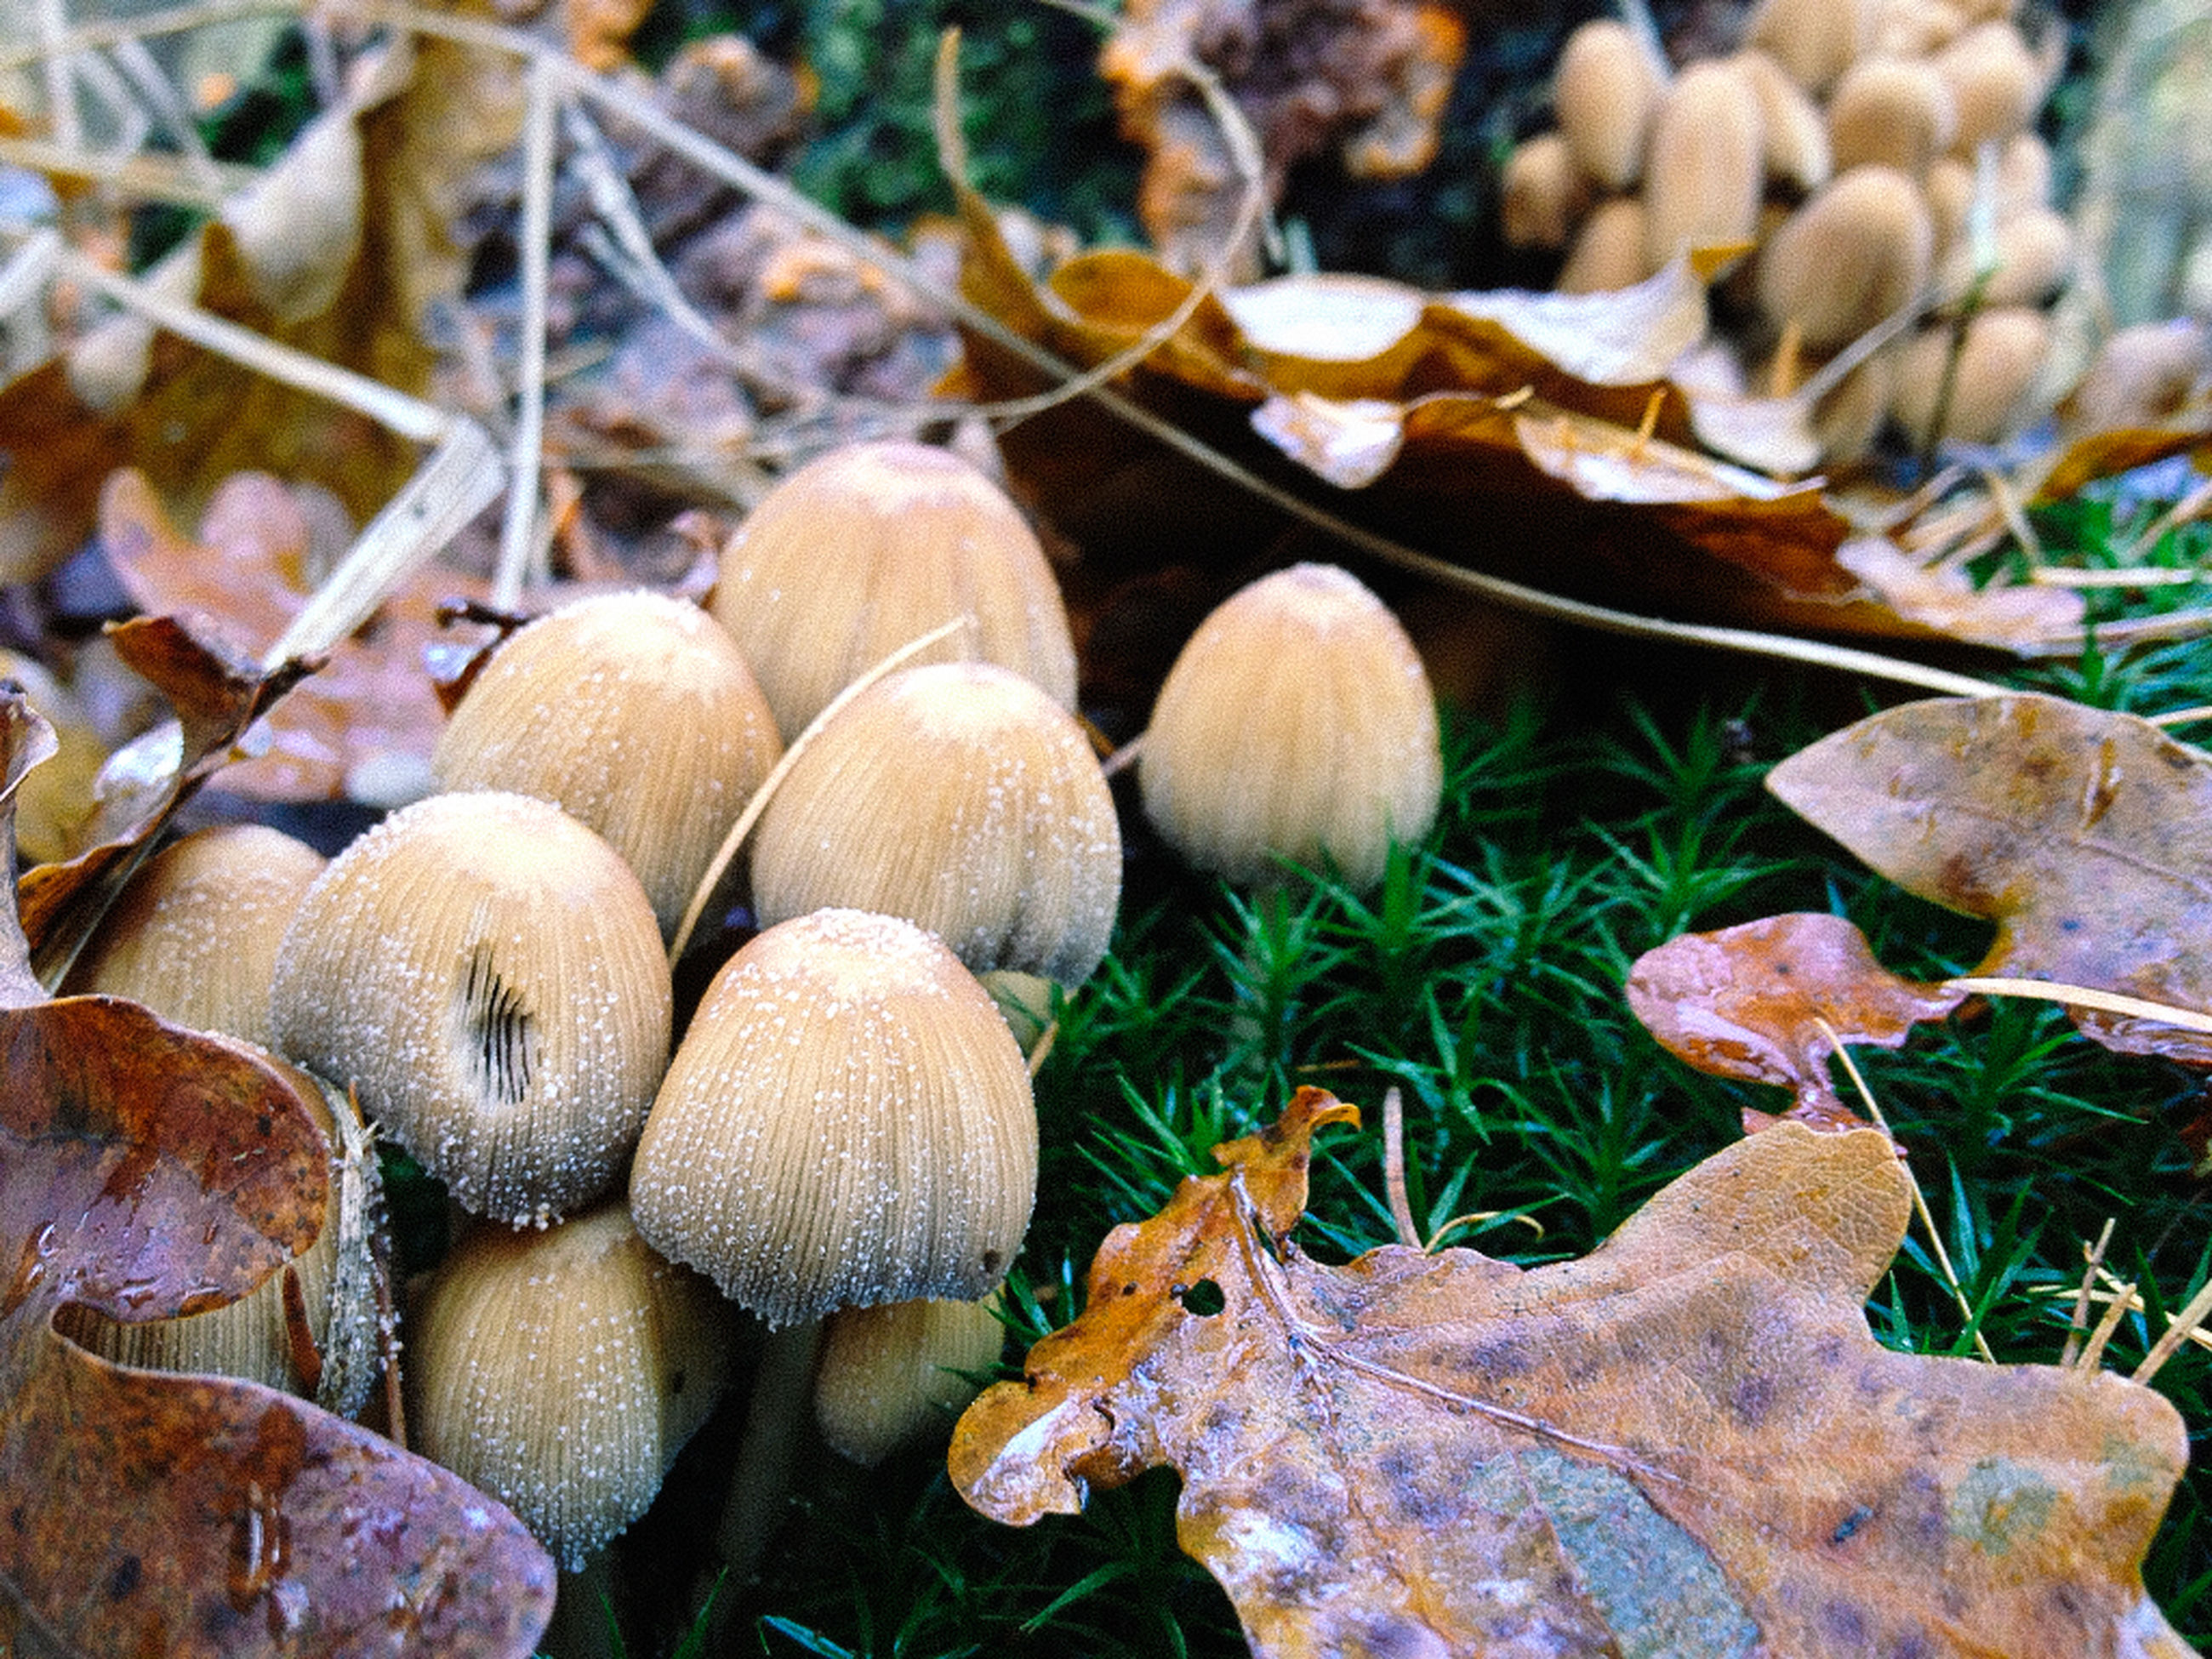 mushroom, fungus, growth, close-up, nature, field, brown, leaf, day, focus on foreground, outdoors, dry, wood - material, forest, log, toadstool, no people, beauty in nature, natural pattern, fragility